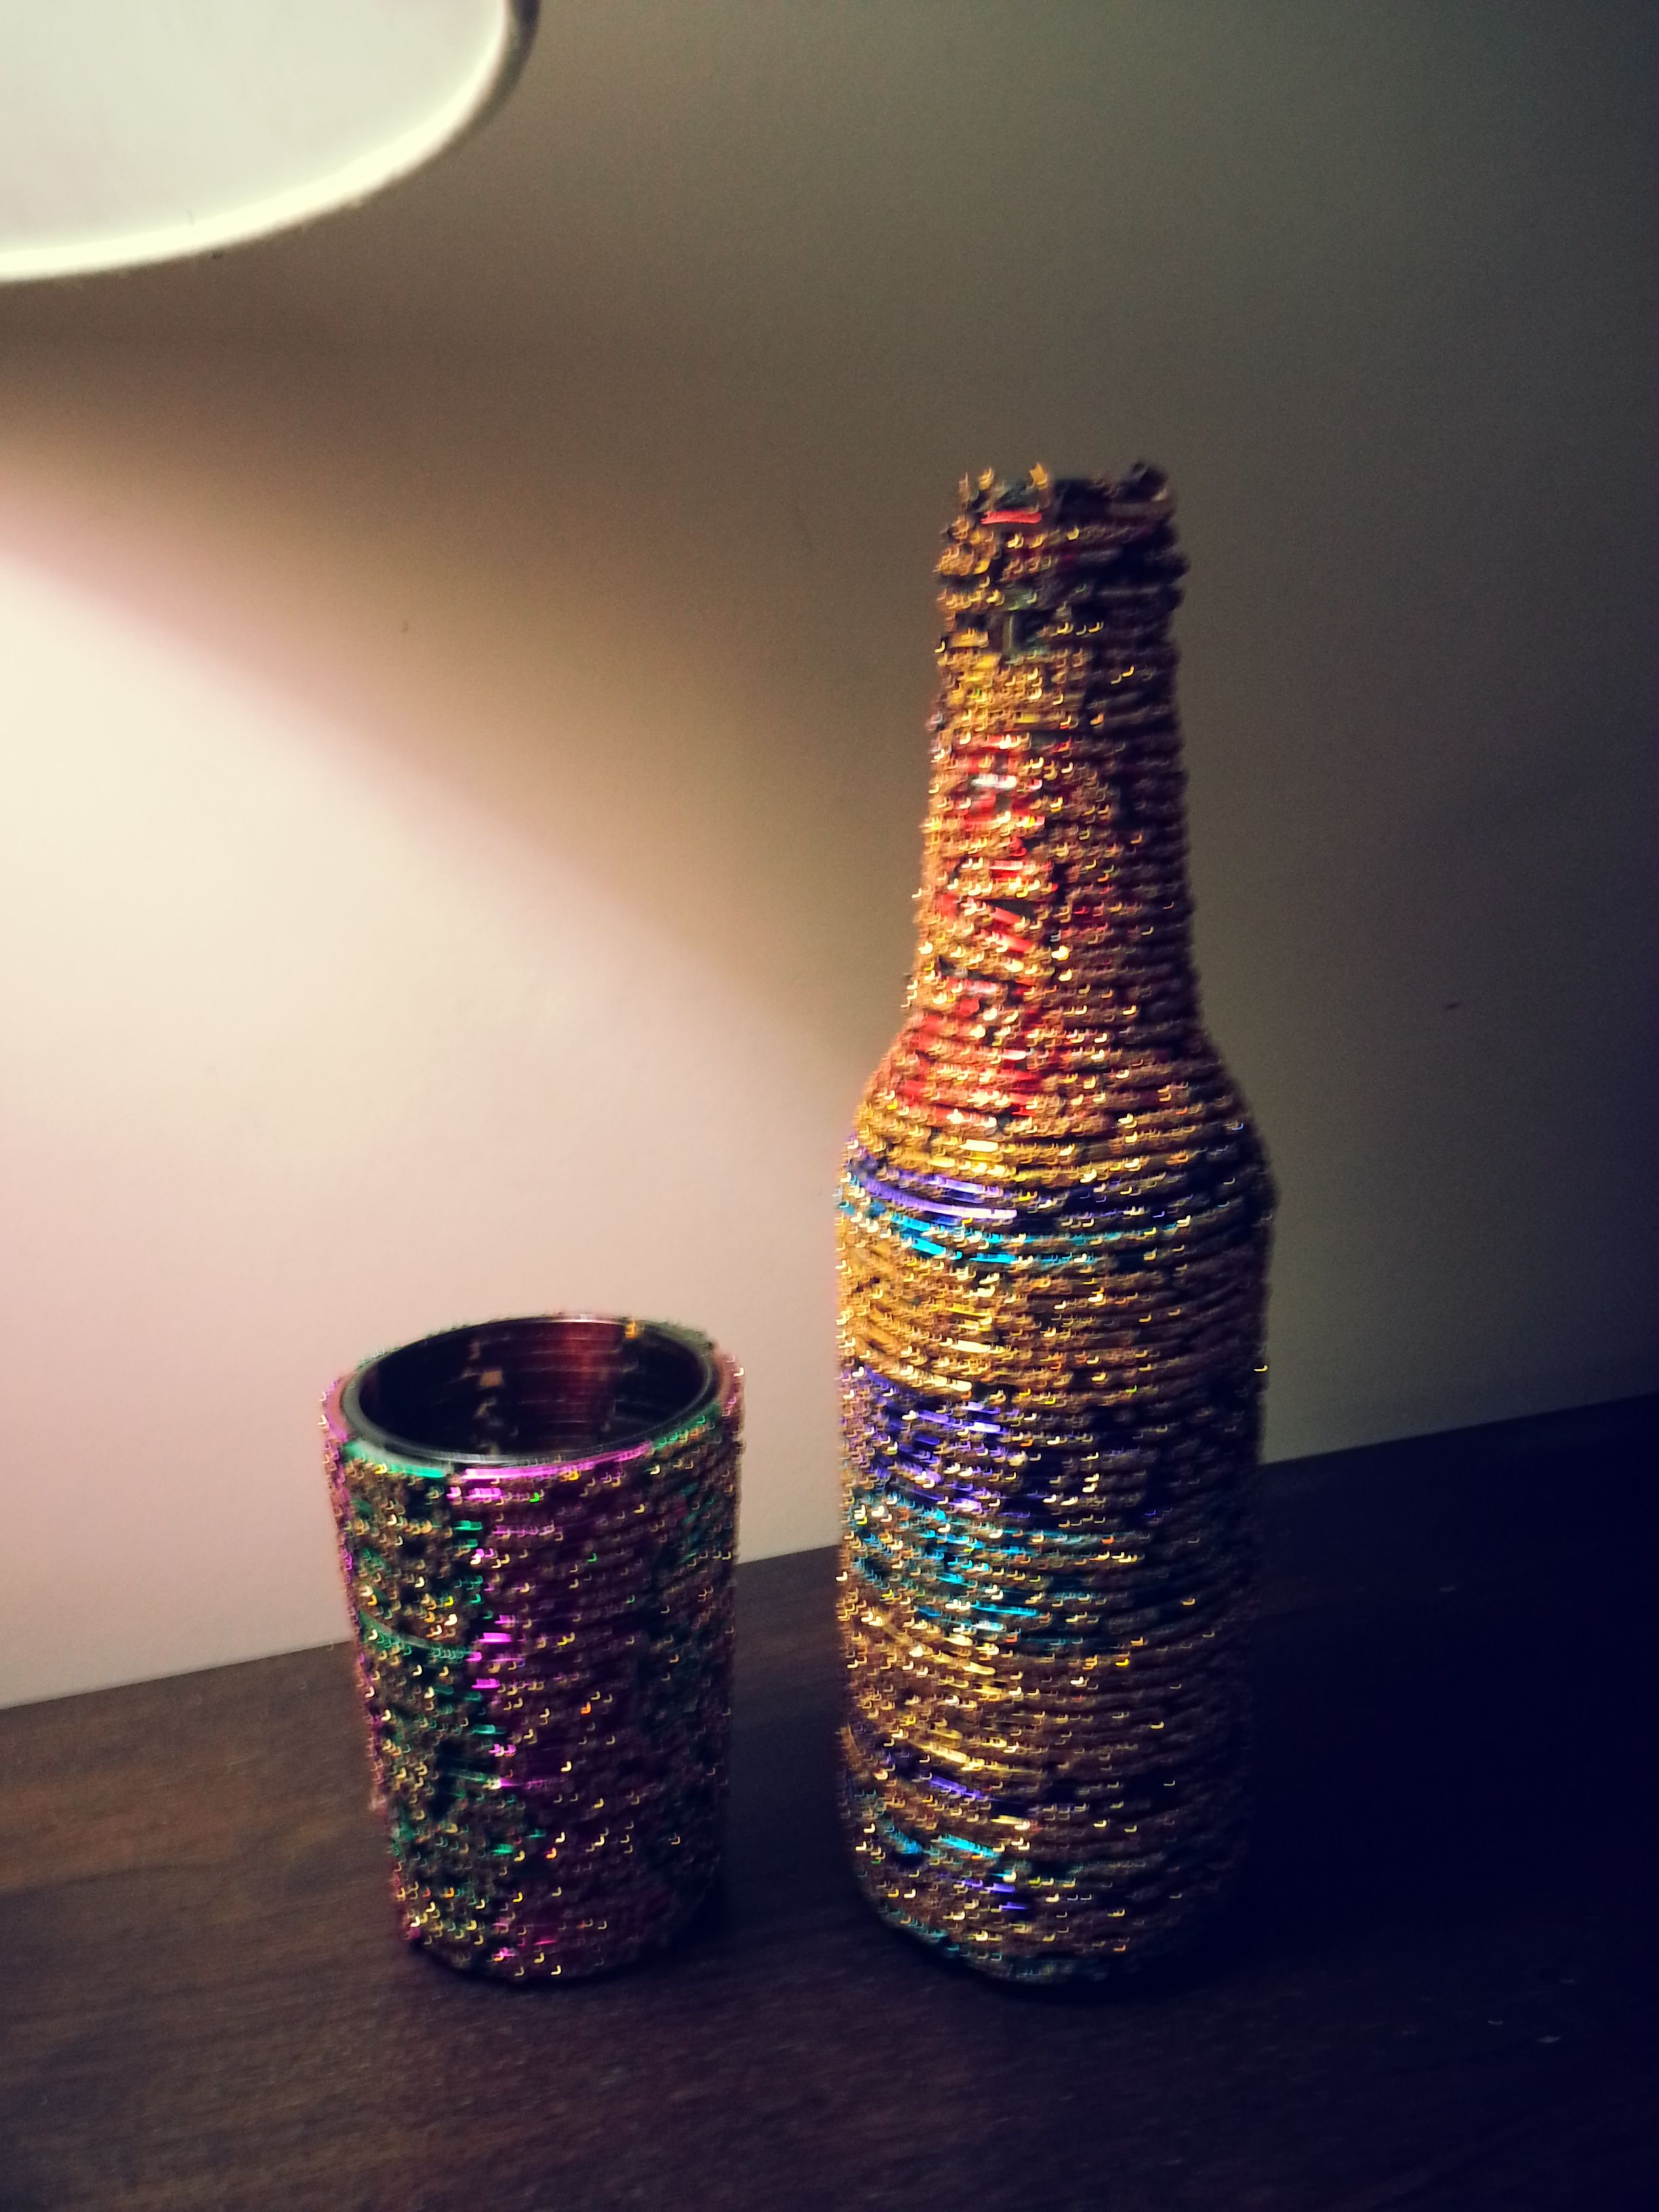 9 waste bangles art ideas activity for joy pinterest for Waste out of waste ideas